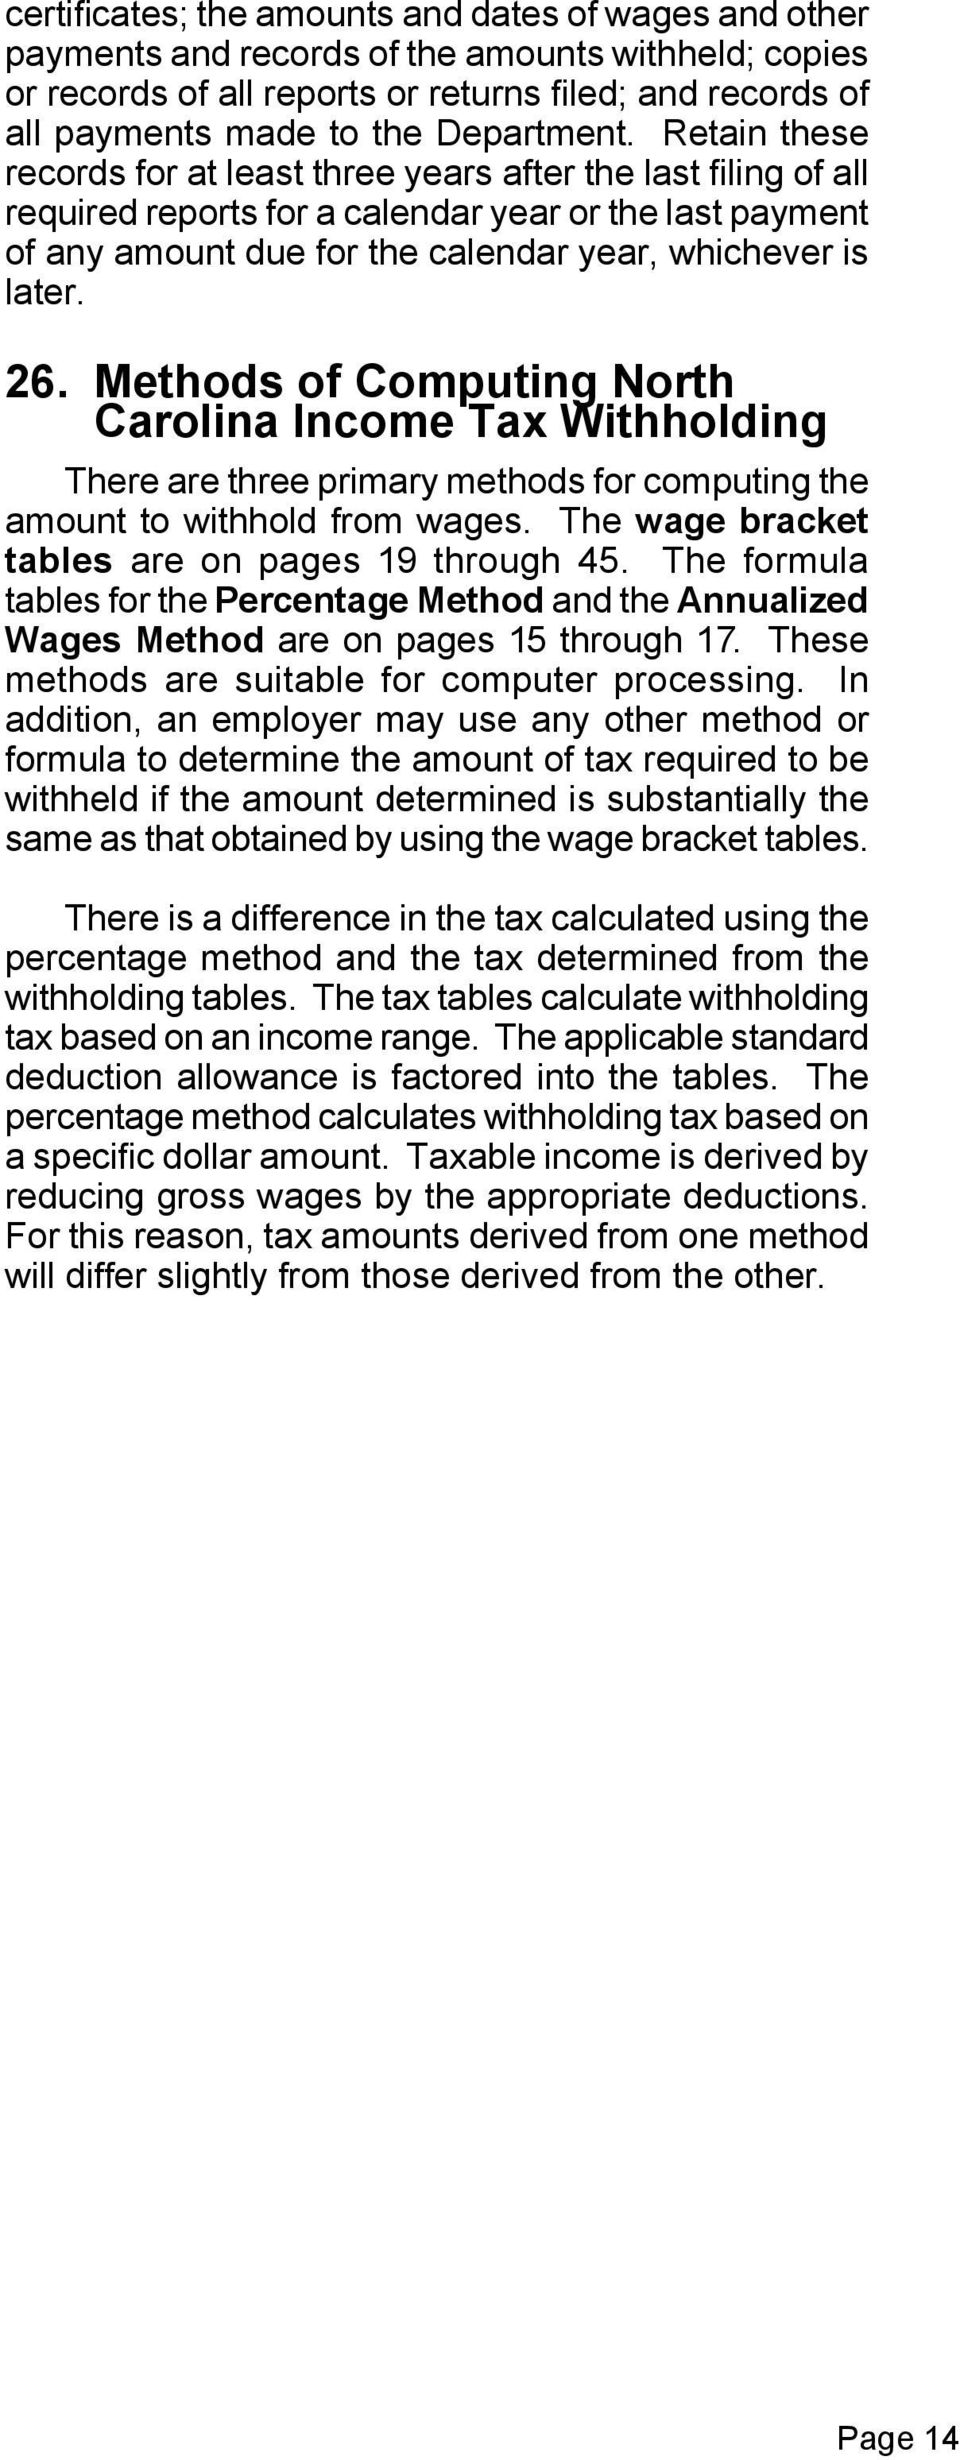 26. Methods of Computing North Carolina Income Tax Withholding There are three primary methods for computing the amount to withhold from wages. The wage bracket tables are on pages 19 through 45.